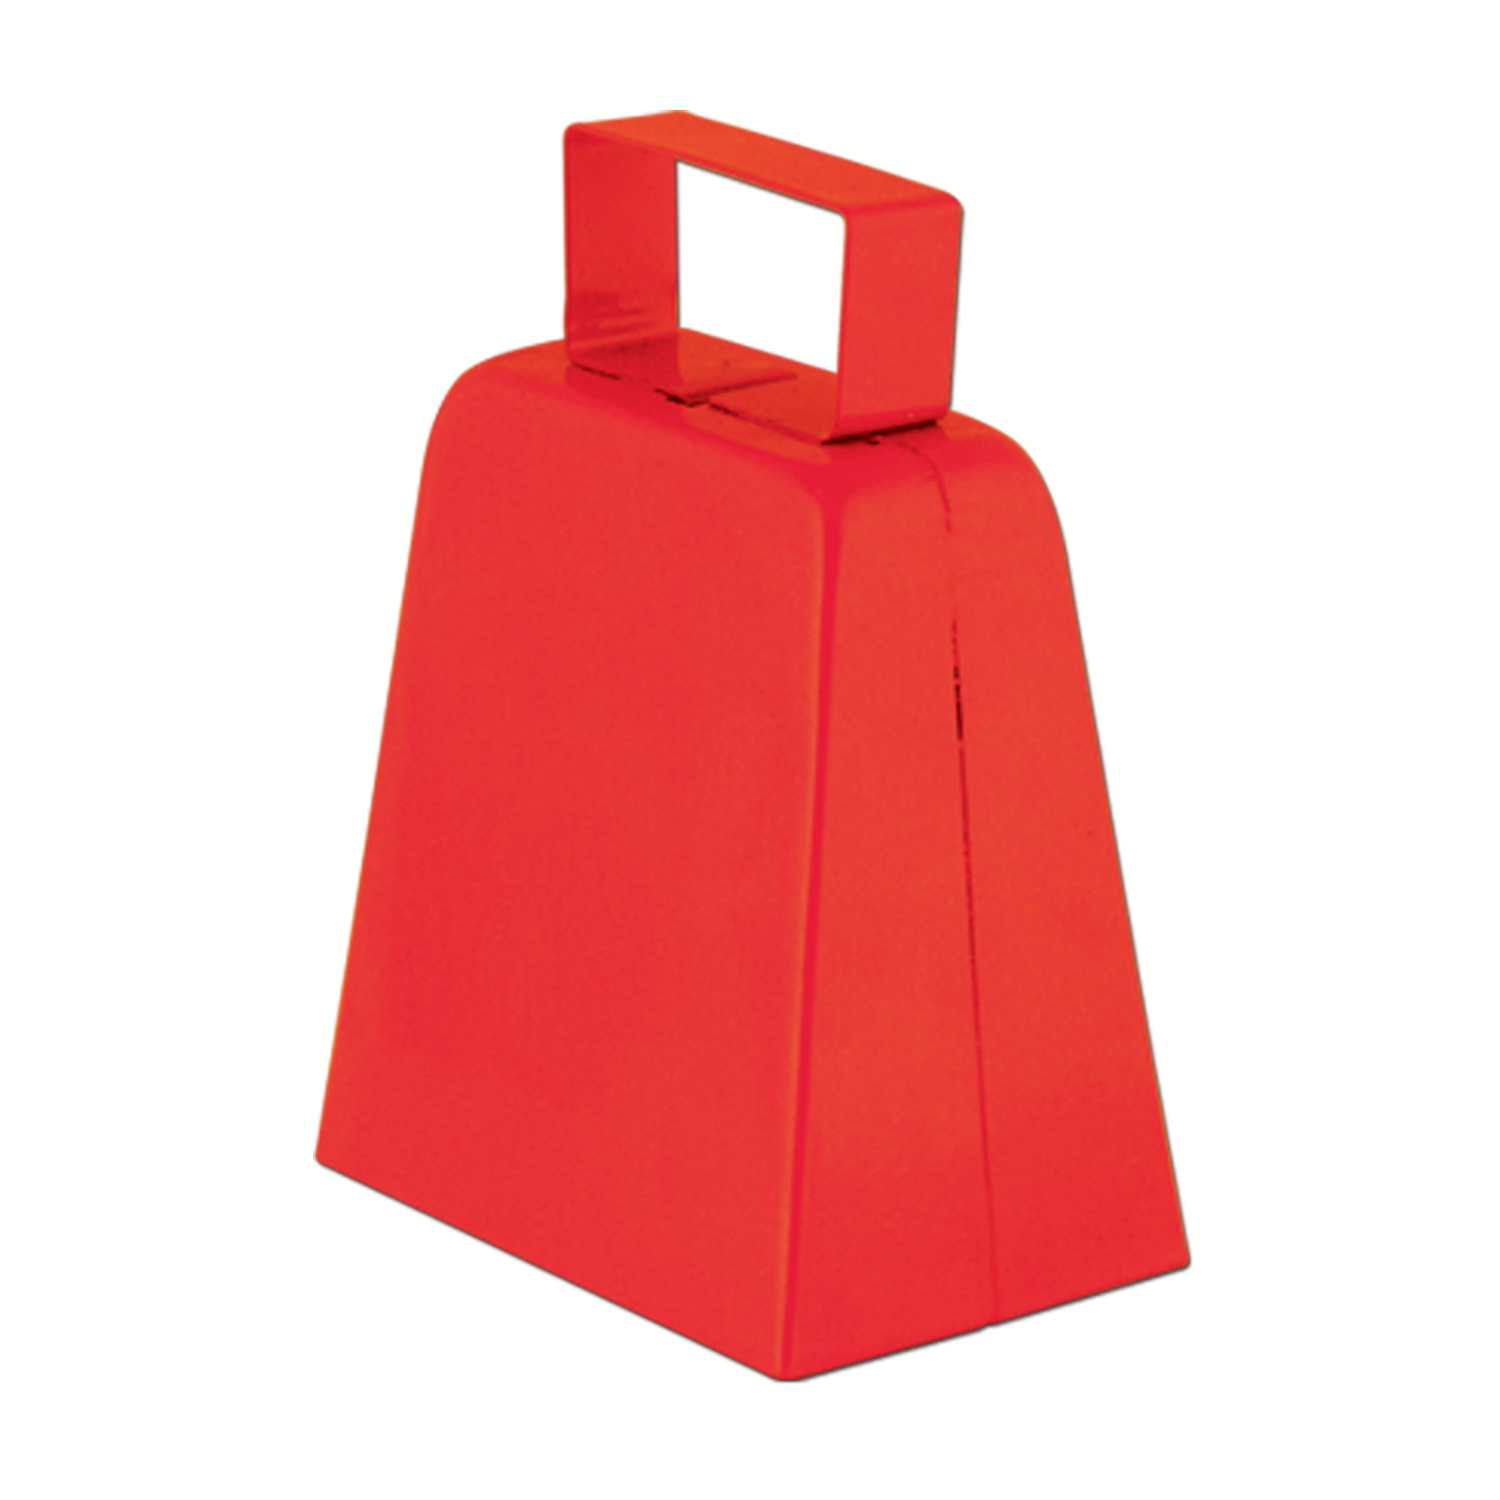 Cowbells (Pack of 12) red, football, playoffs, superbowl, tailgating, noisemaker, party, cowbell